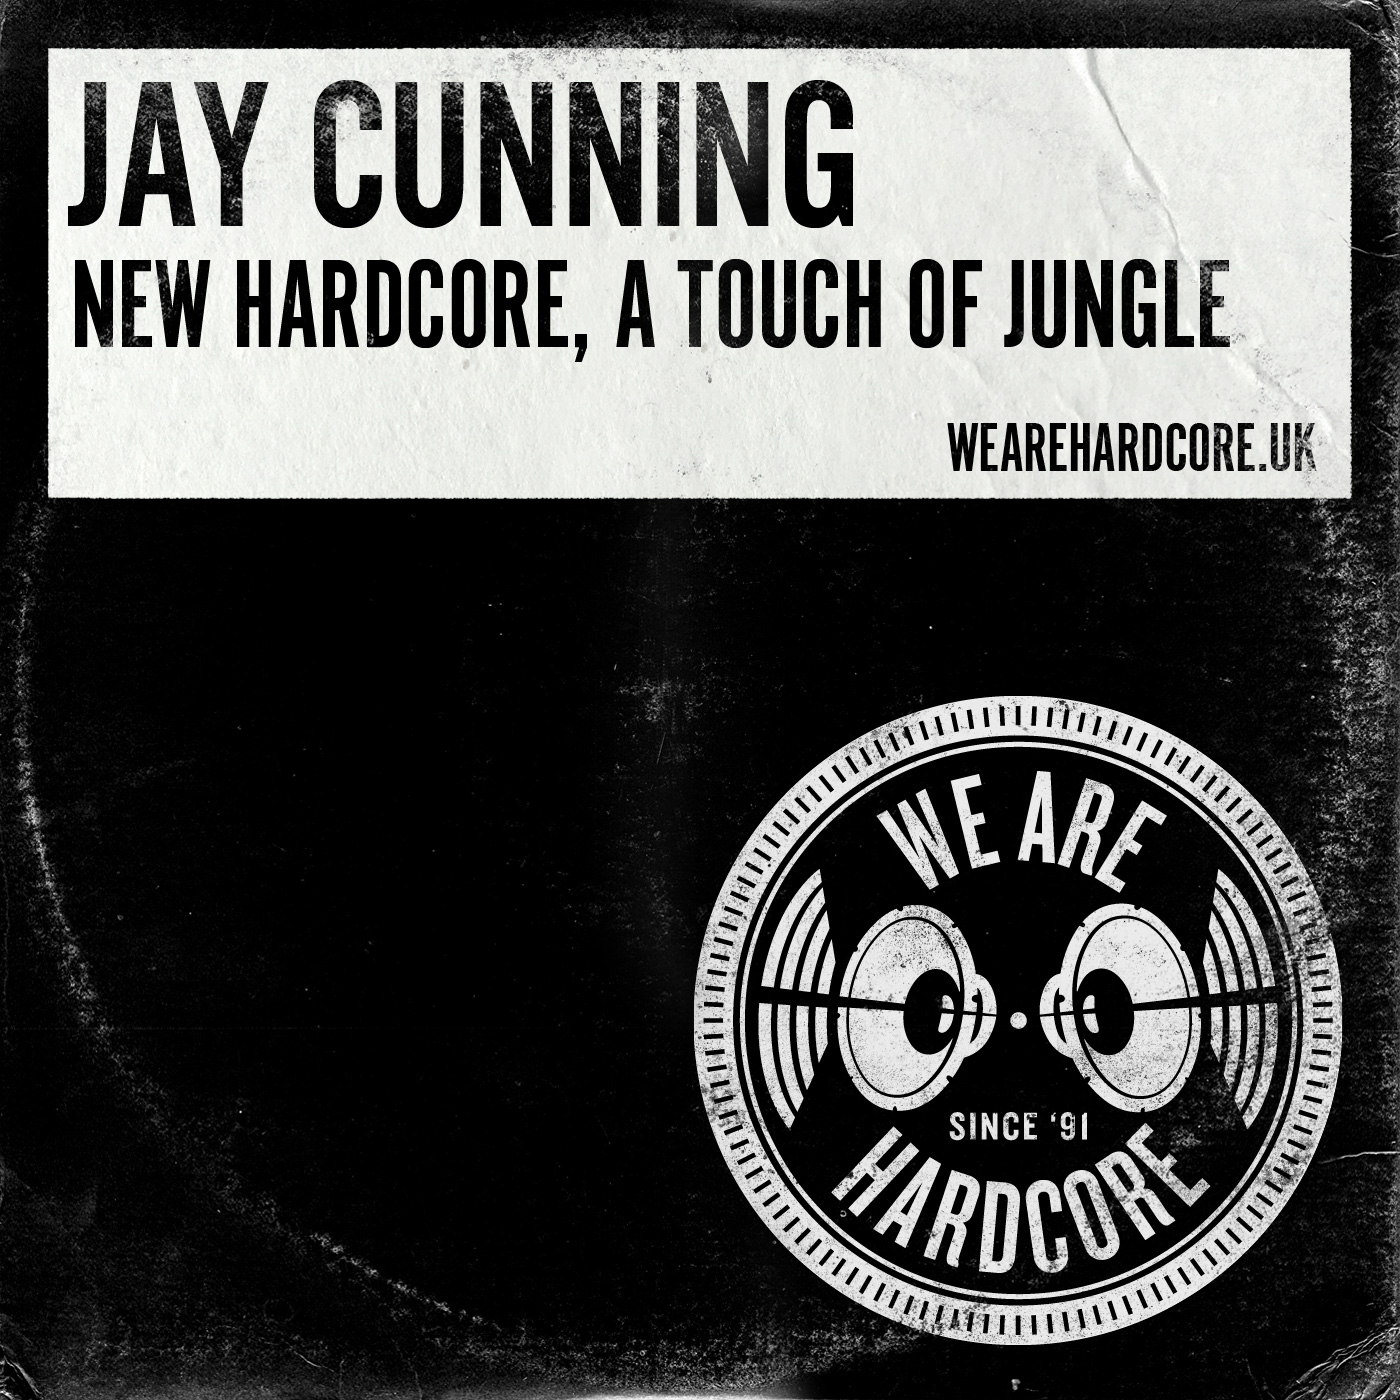 New Hardcore, Touch of Jungle - Jay Cunning WE ARE HARDCORE